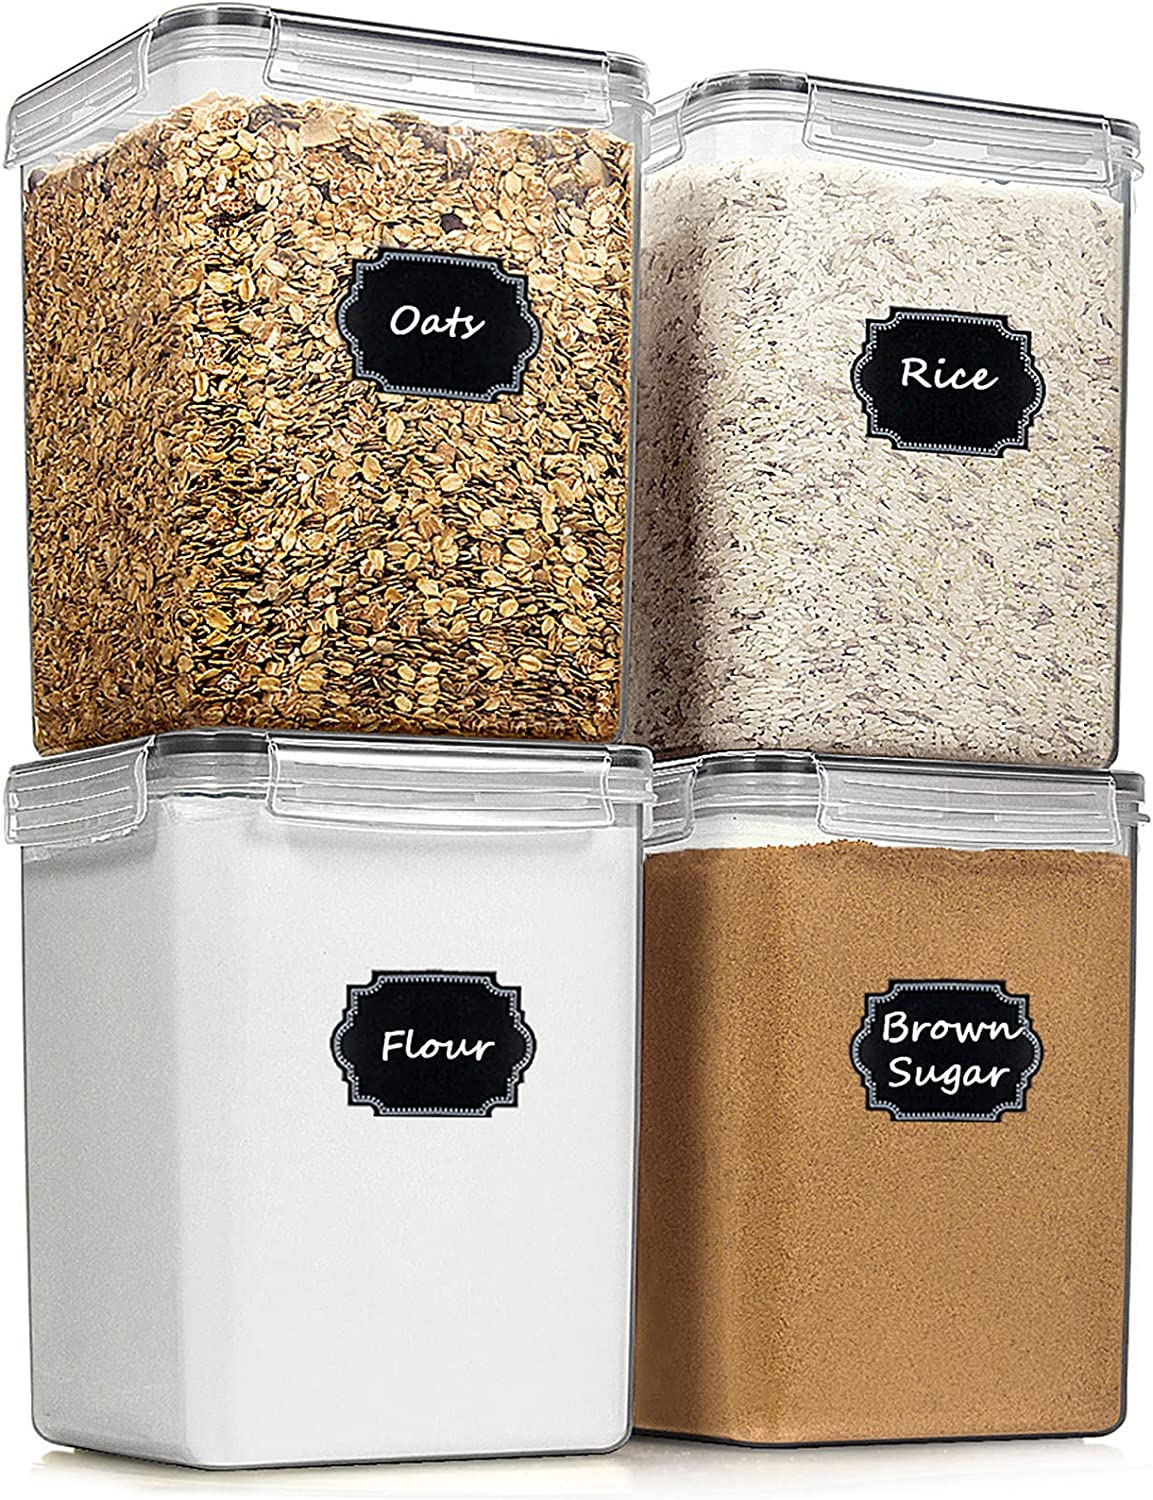 Extra Large Food Storage Containers, Blingco Airtight Tall Cereal & Dry Food Storage Containers Set of 4 [6.5L/ 5.9QT] for Flour, Sugar, Baking Supplies, Kitchen & Pantry Storage Container - Gray